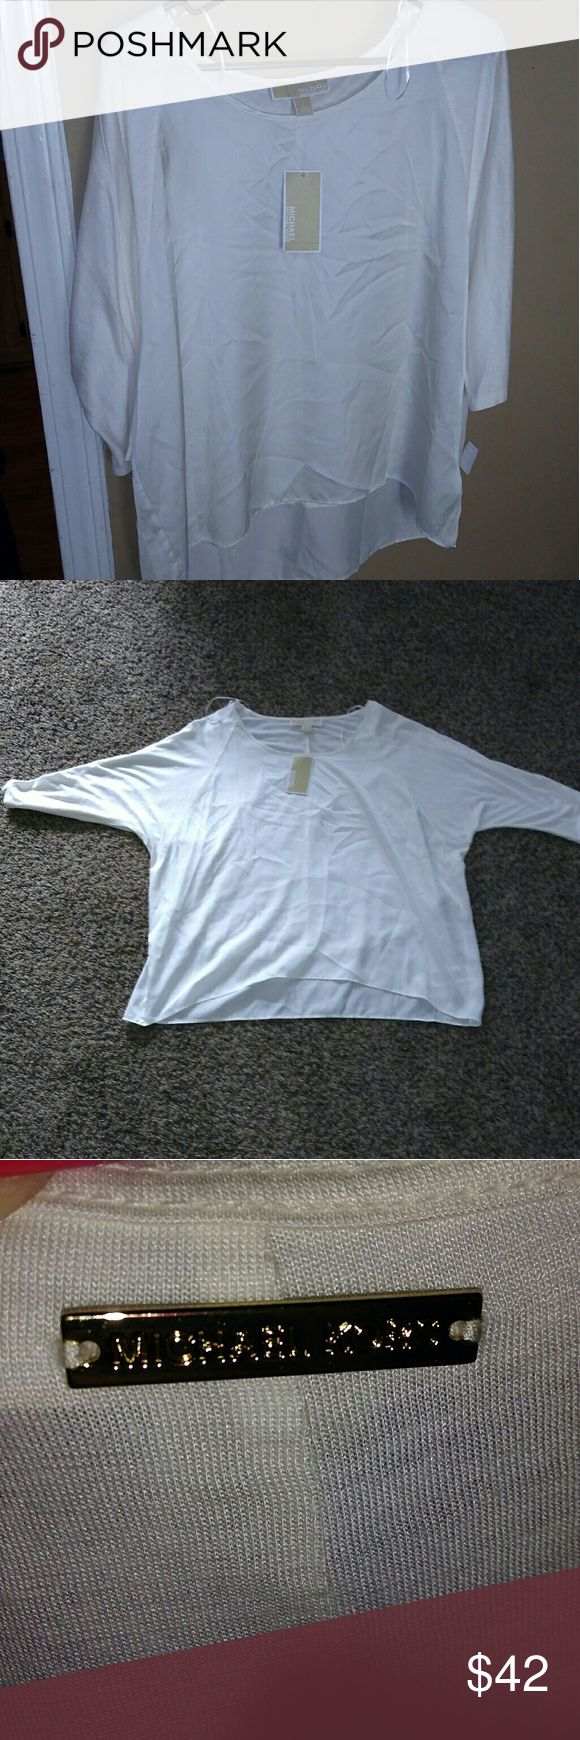 Michael Kors Slouchy Top ? NEW WITH TAGS!! Cream color. 3/4 sleeve. Size Large. The front is sheer (feels a little like satin). The back has the gold MK logo on the neckline. This can be dressed up or down with leggings, jeans, or pencil skirt. BRAND NEW WITH TAGS.  I love to Bundle and open to offers! Happy Poshing! Michael Kors Tops